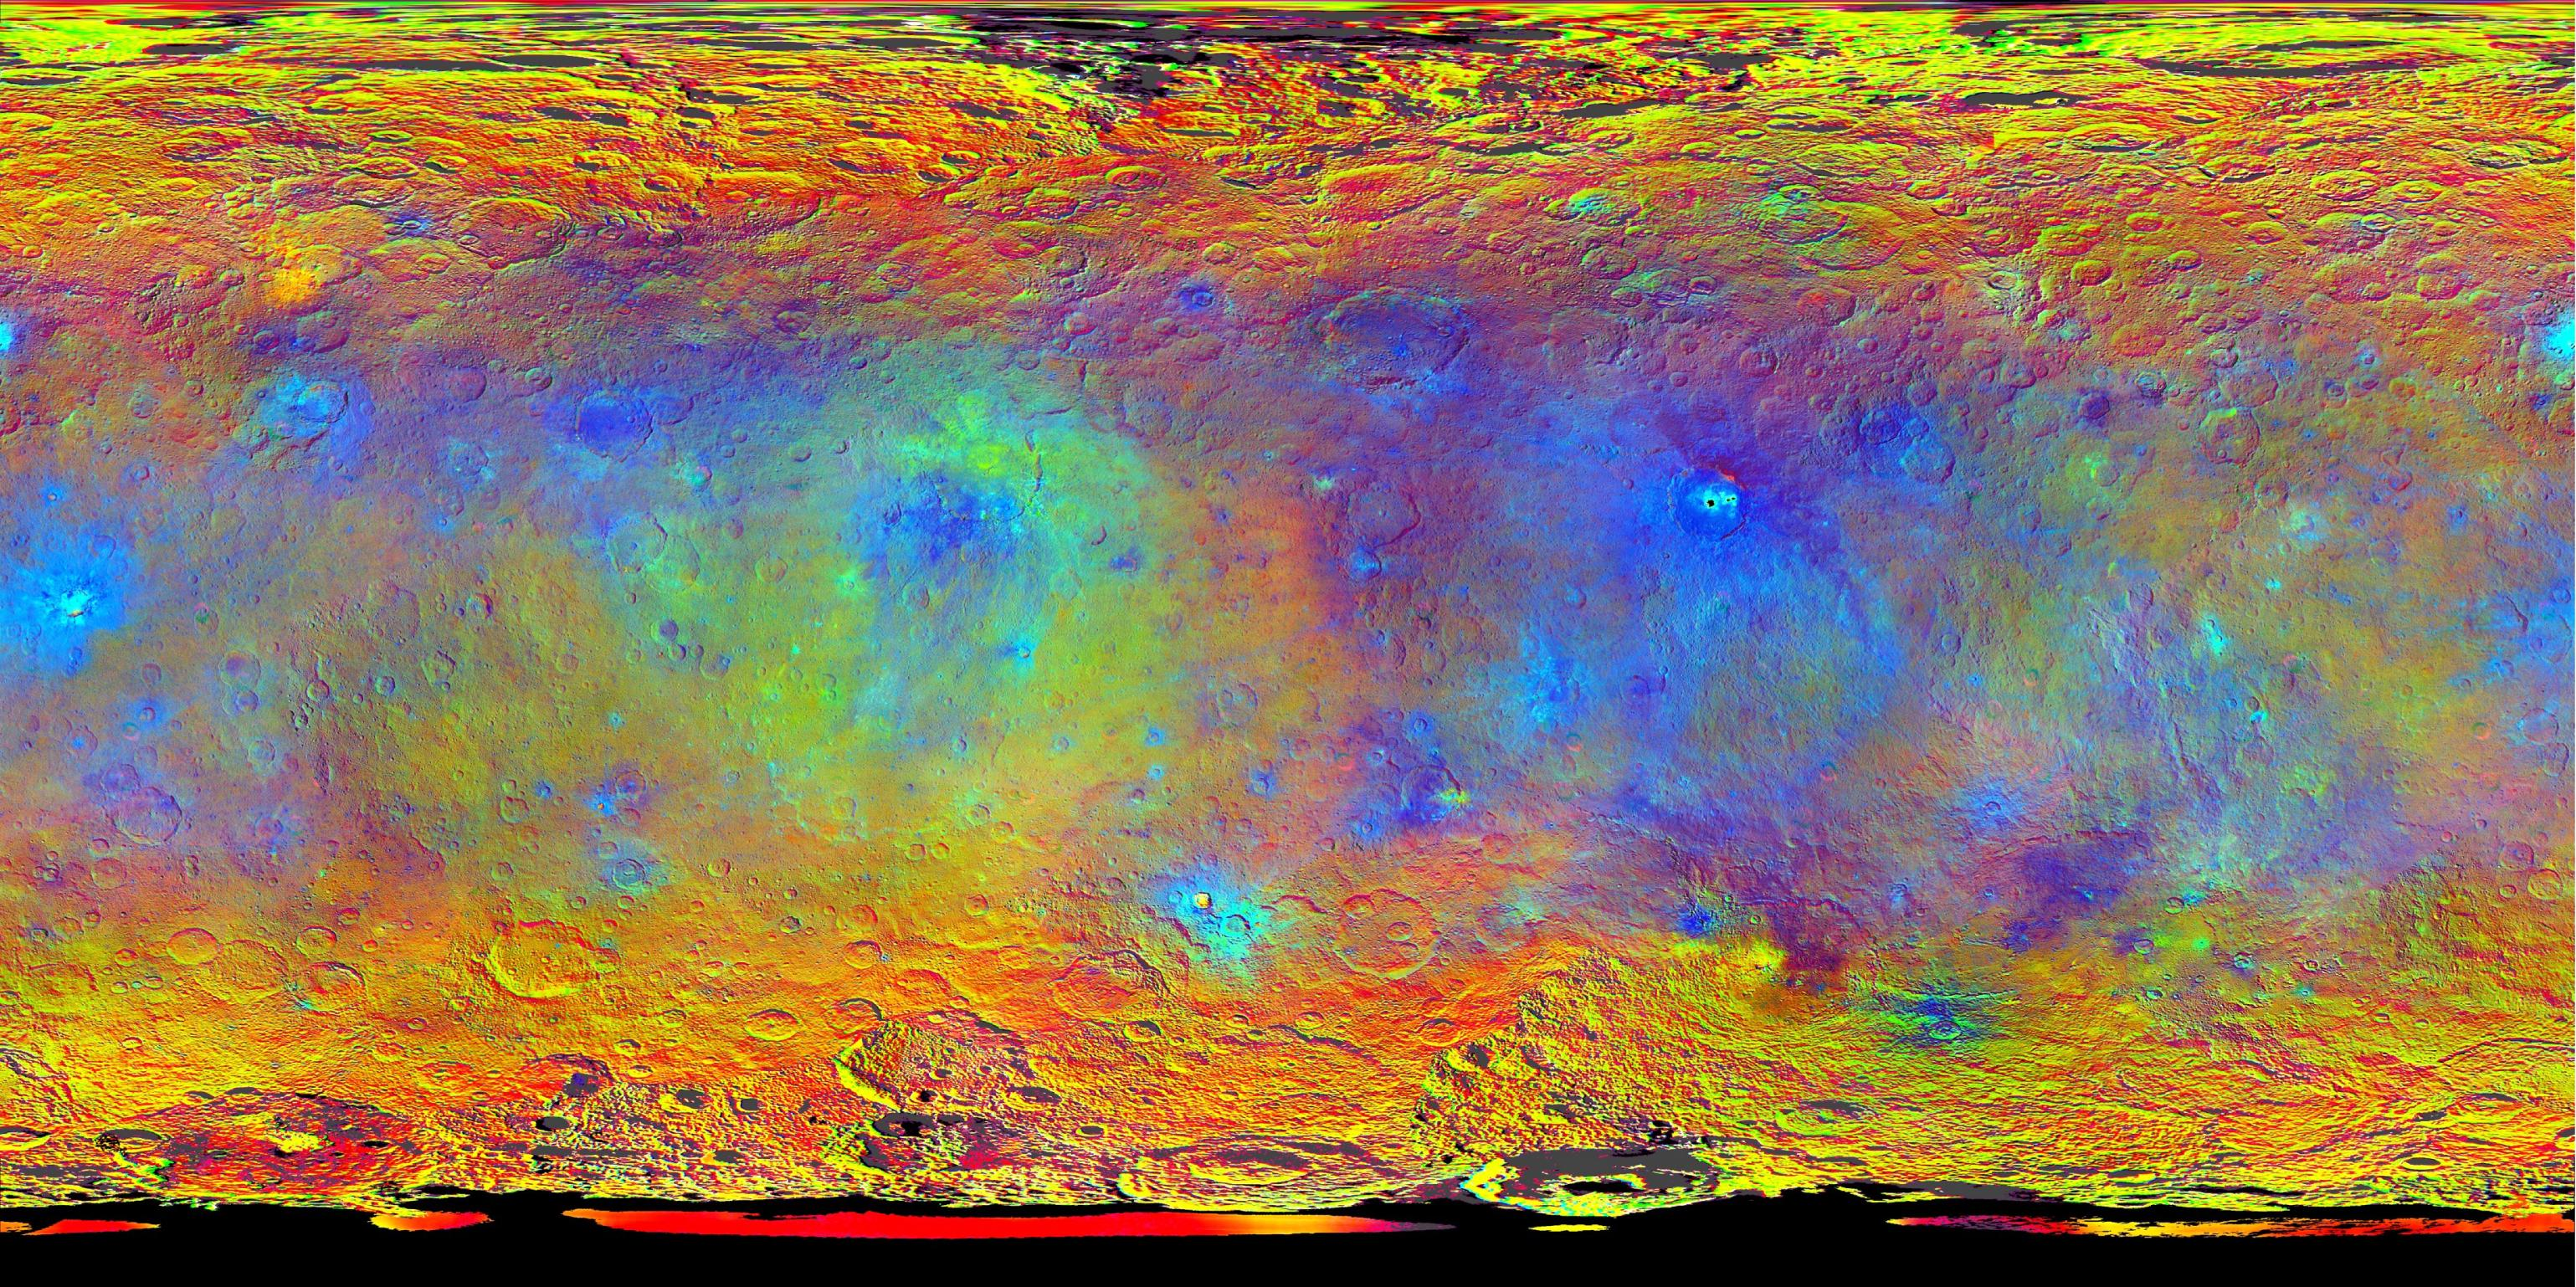 Hints At Ceres Composition From Color Multimedia Solar System - Nasa topographic map